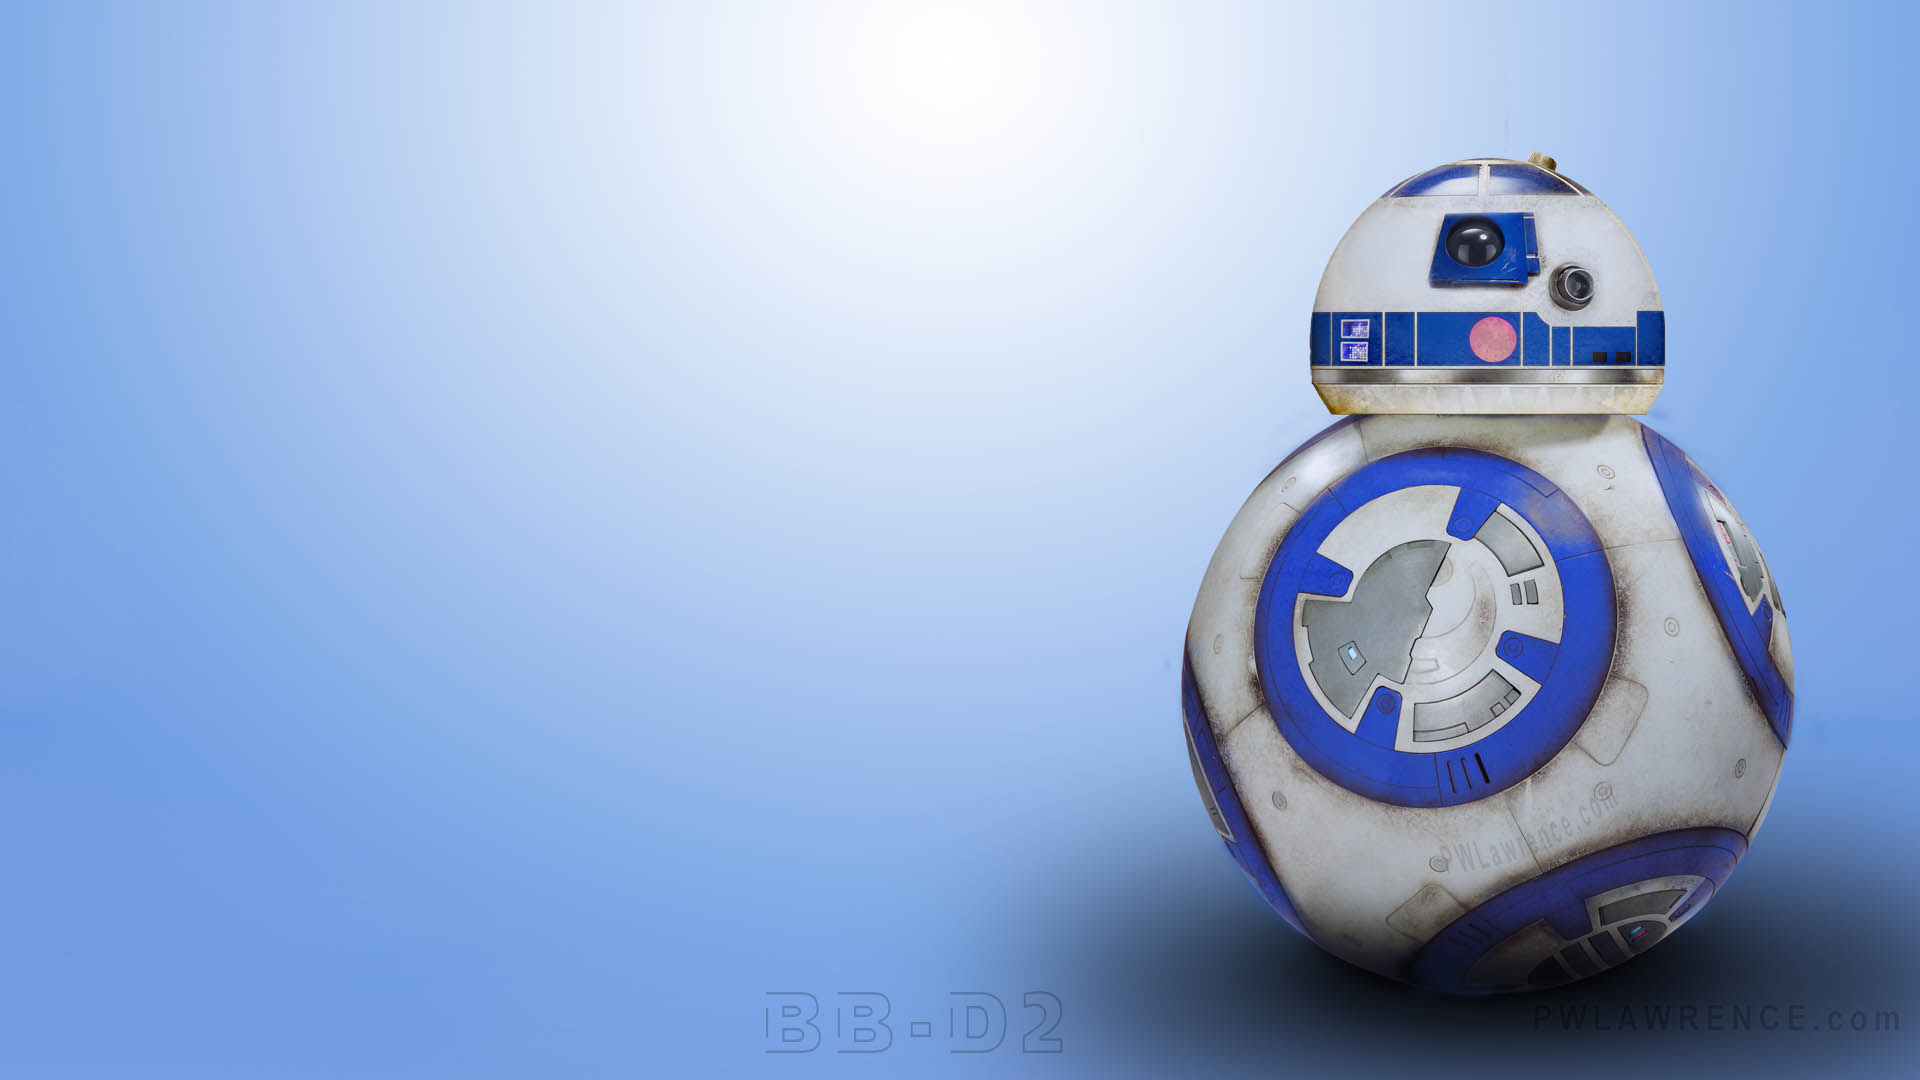 BB8 R2D2 Inspired BB D2 Droid Wallpaper Patrick Lawrences Art